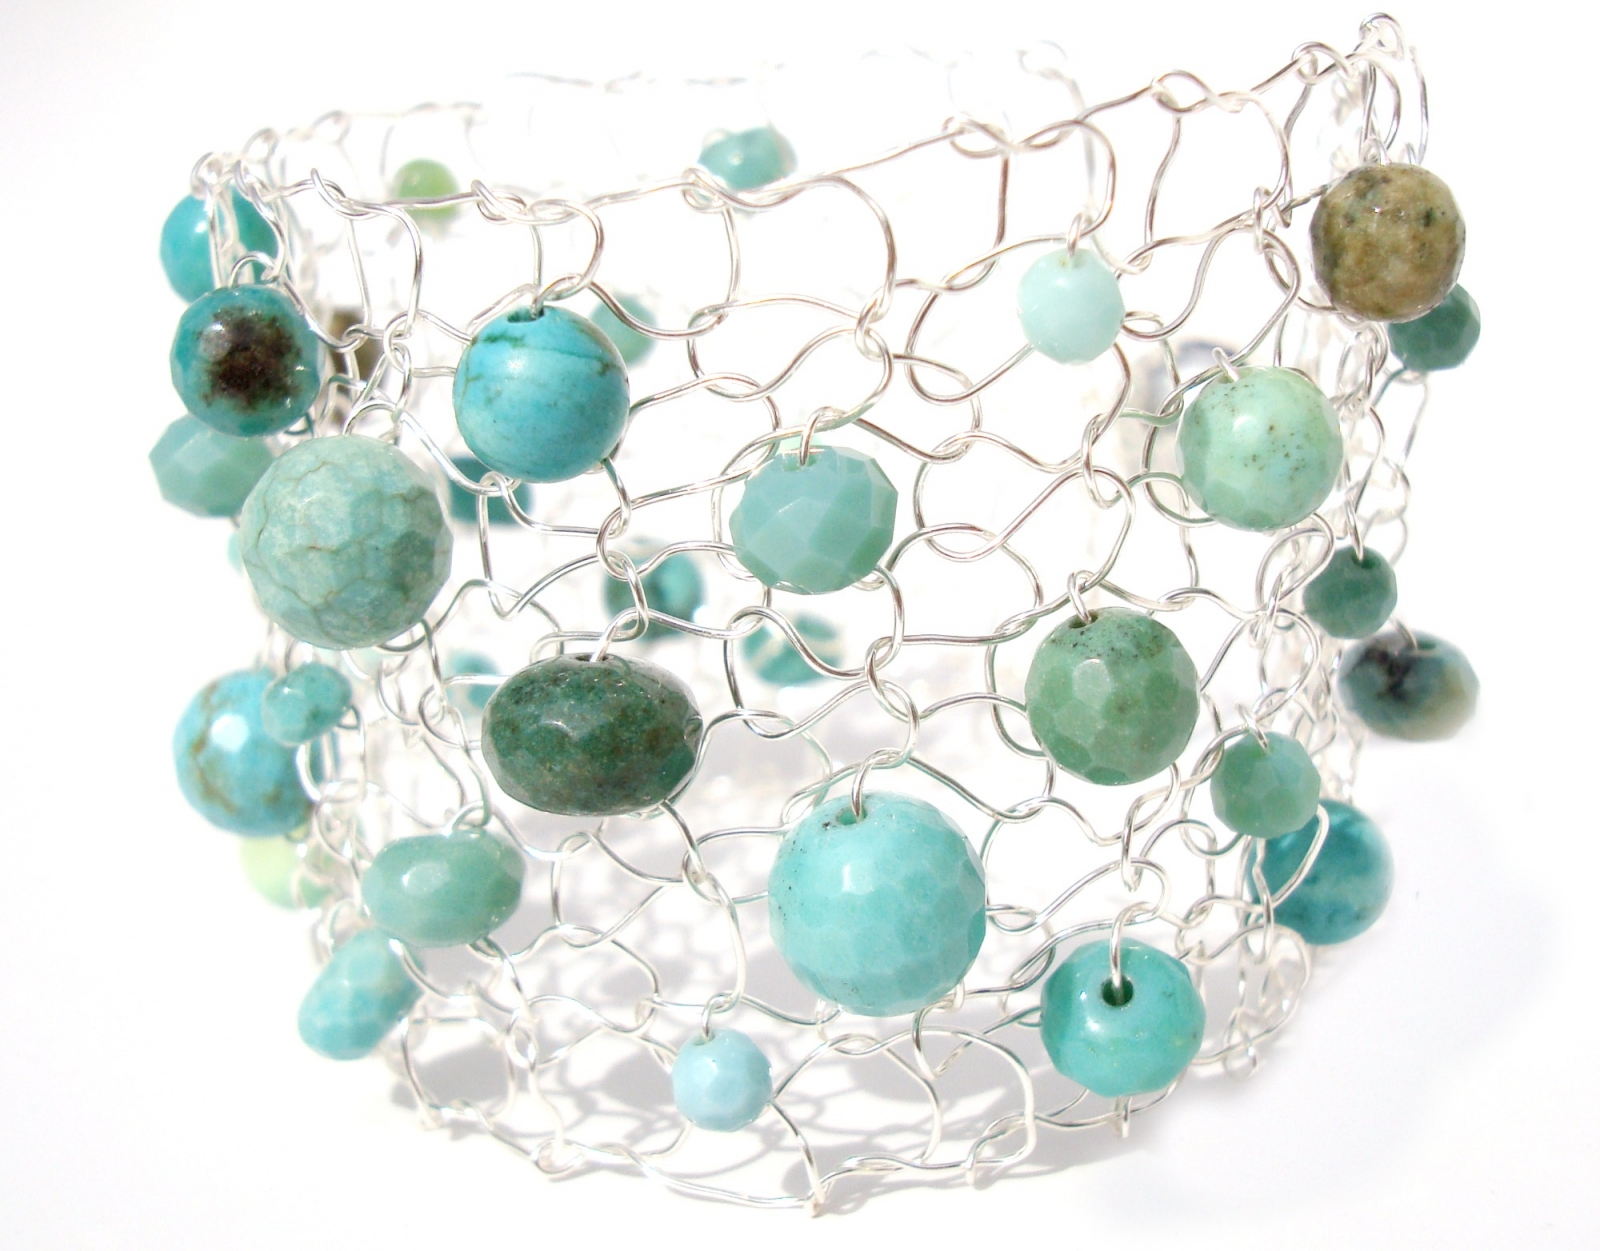 Turquoise & Green Opal Silver Cuff Bracelet / Limited Edition Beaded ...